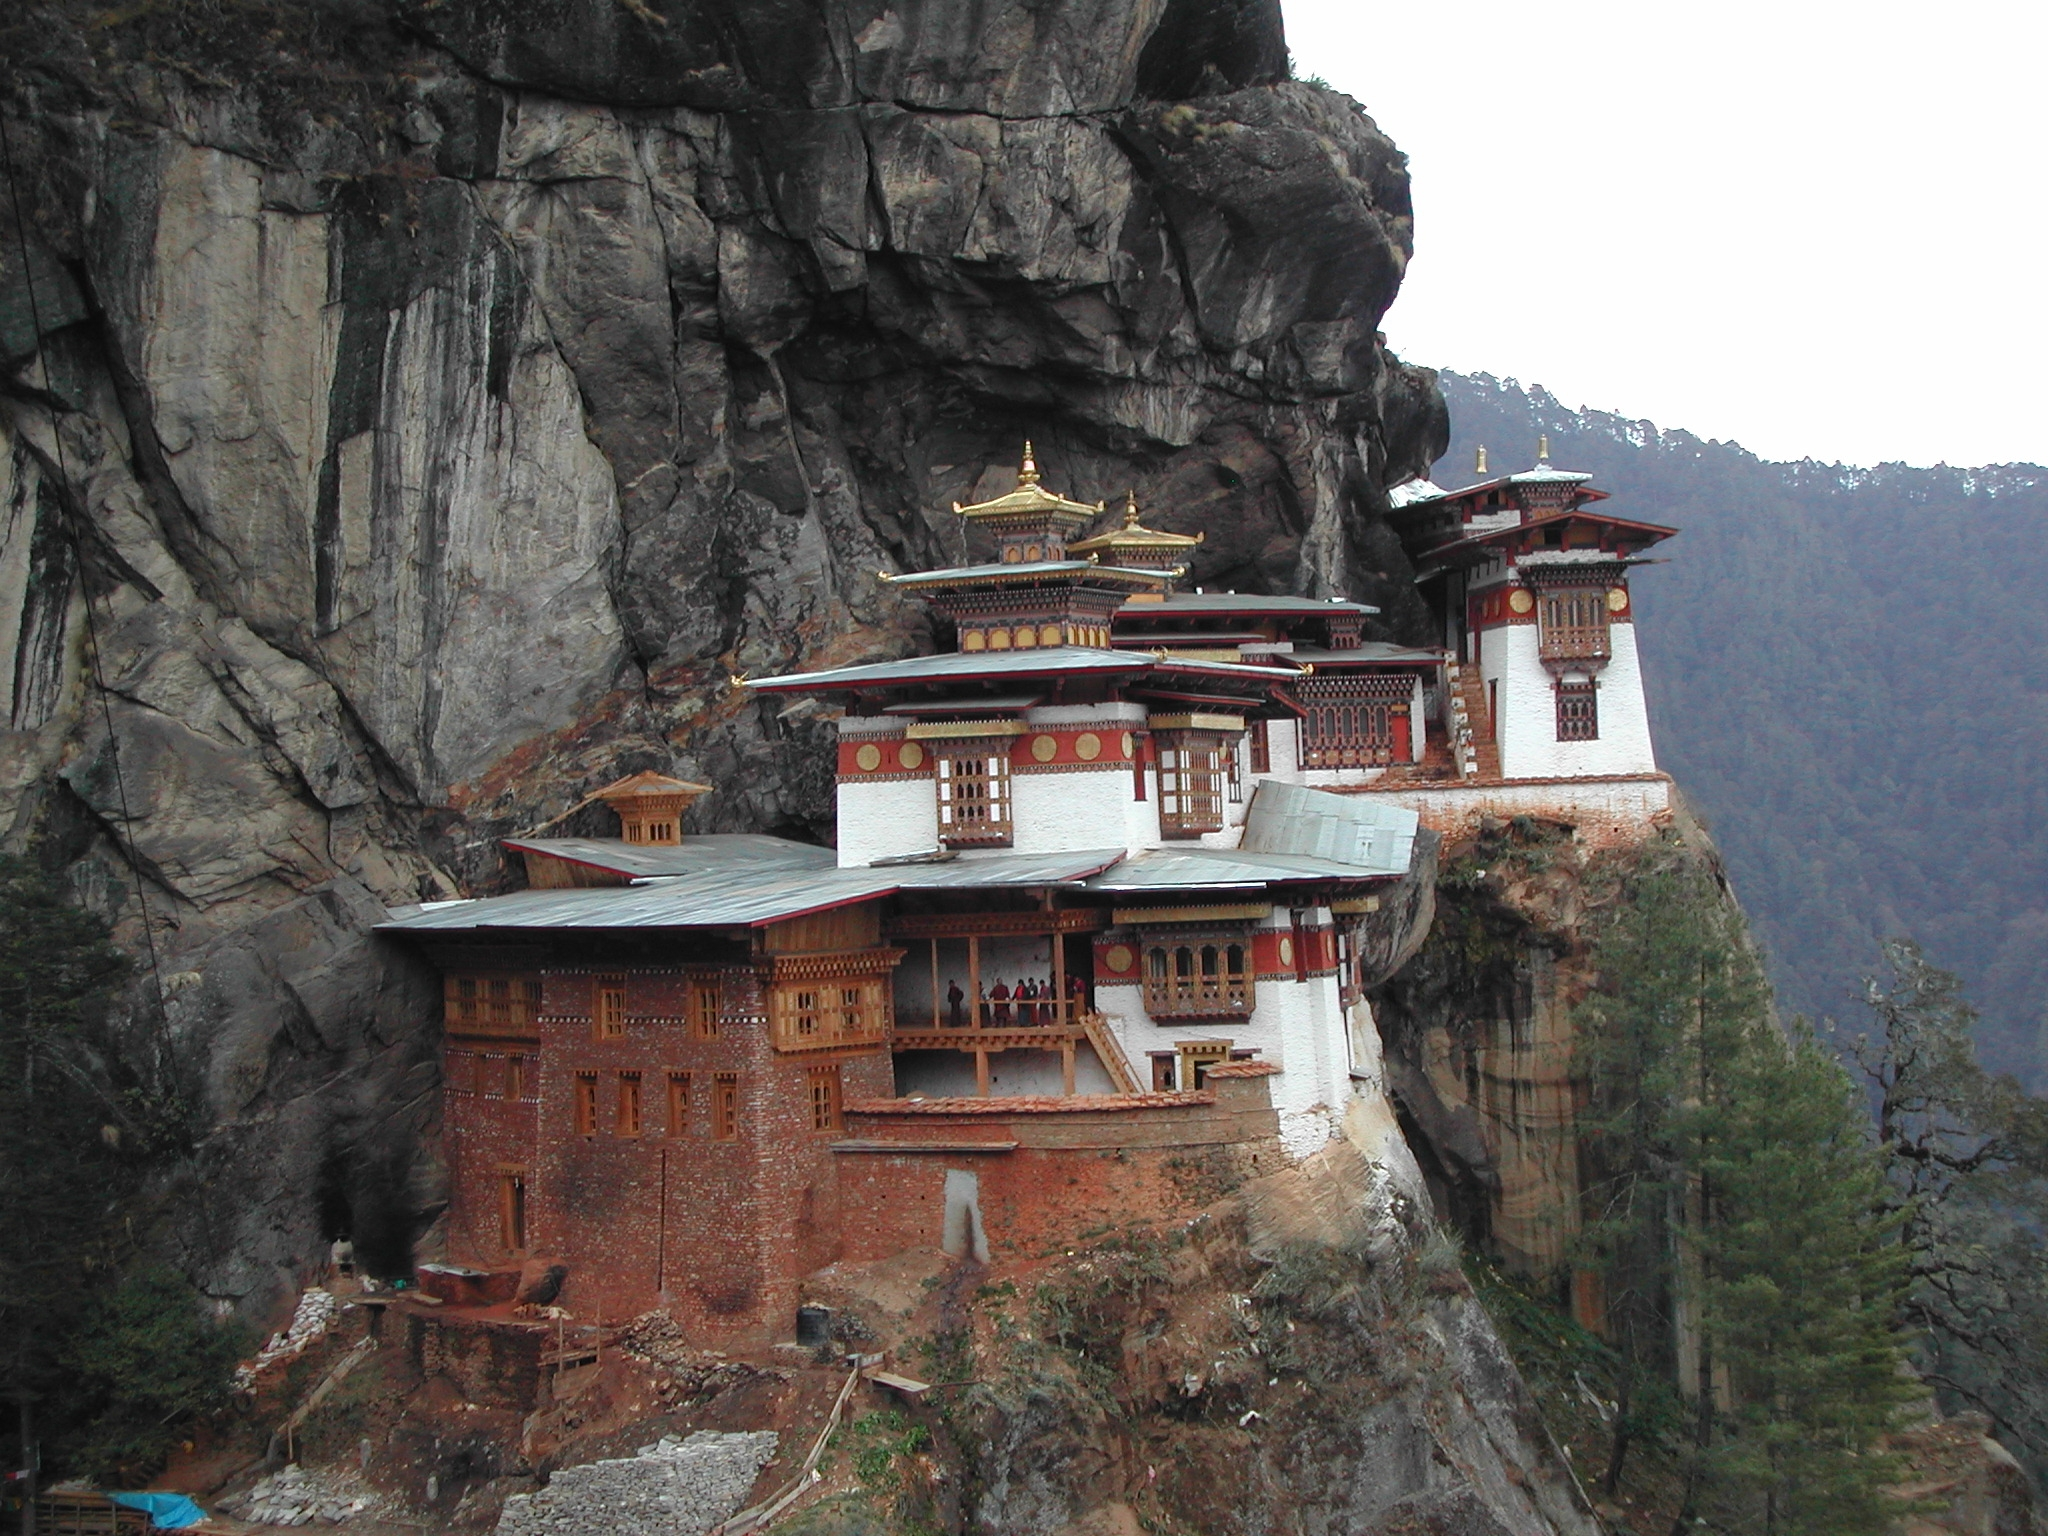 amazing beautiful temple tigers nest bhutan wallpapers free download - Picture of the day 6th May 2012